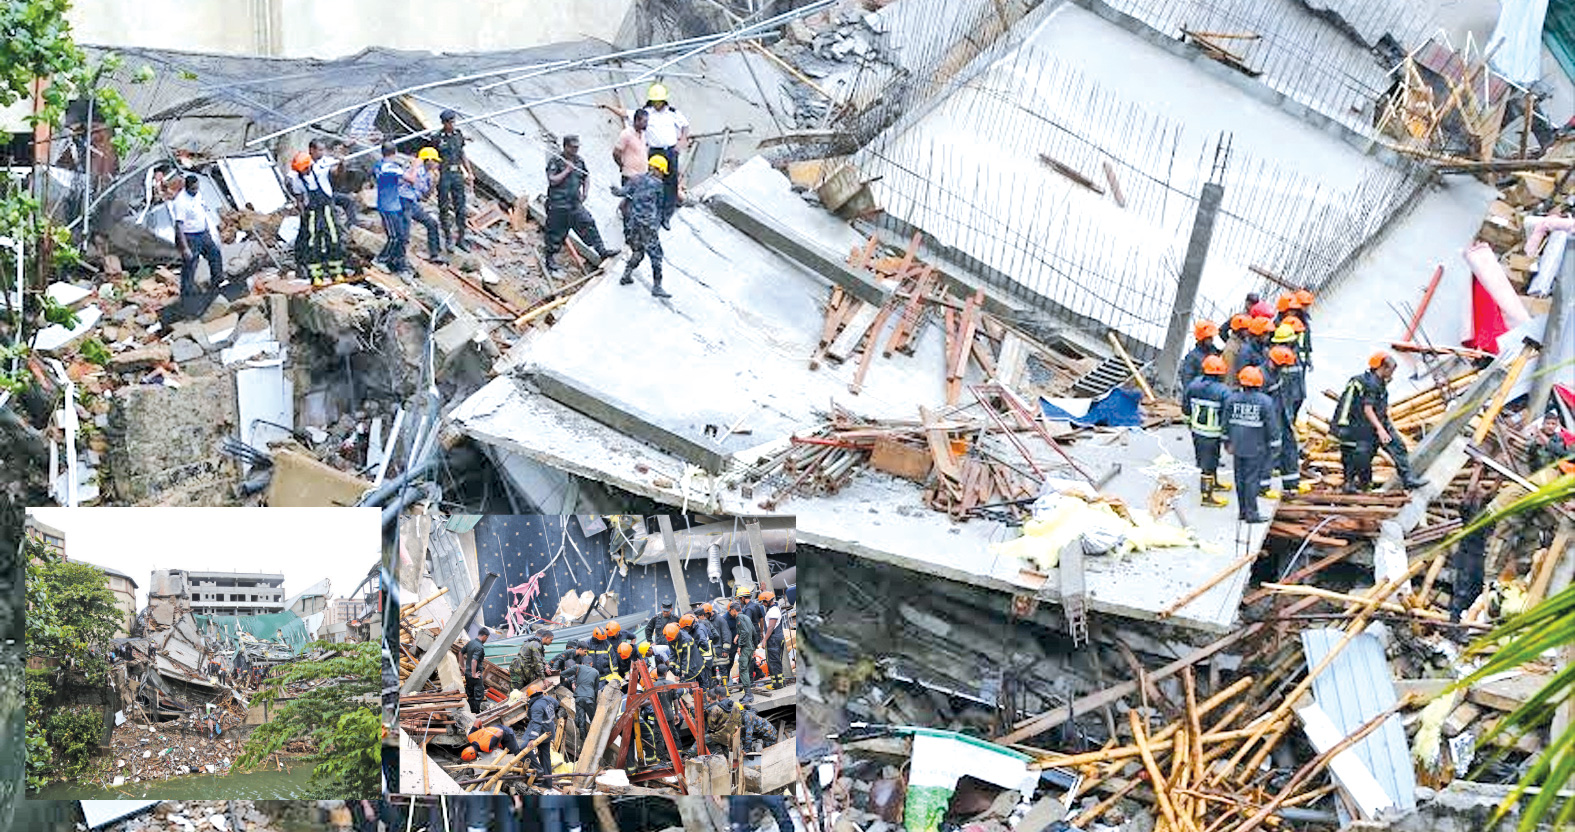 Military rescue teams and fire fighters searching for missing  persons in the rubble of the collapsed building at Wellawatte.   Pictures by Rukmal Gamage and Vipula Amarasinghe